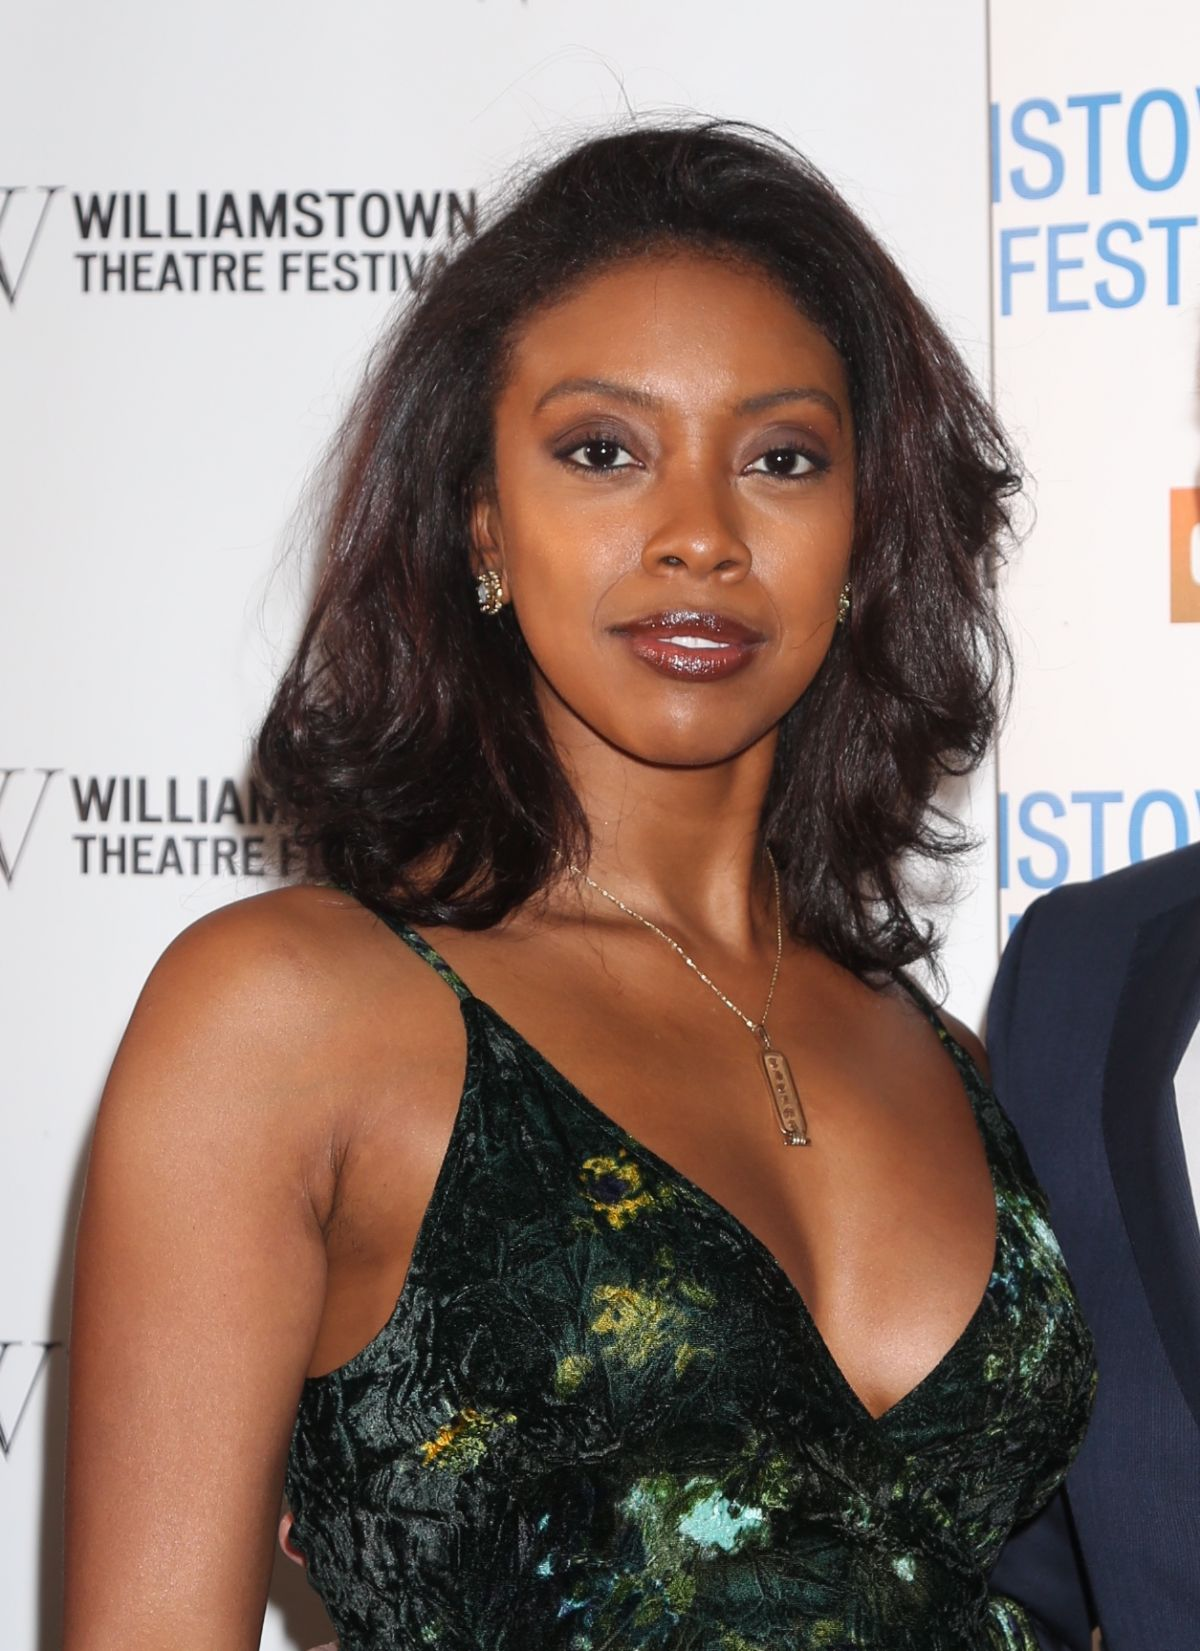 Condola Rashad nude (67 photo), Pussy, Leaked, Feet, cleavage 2020